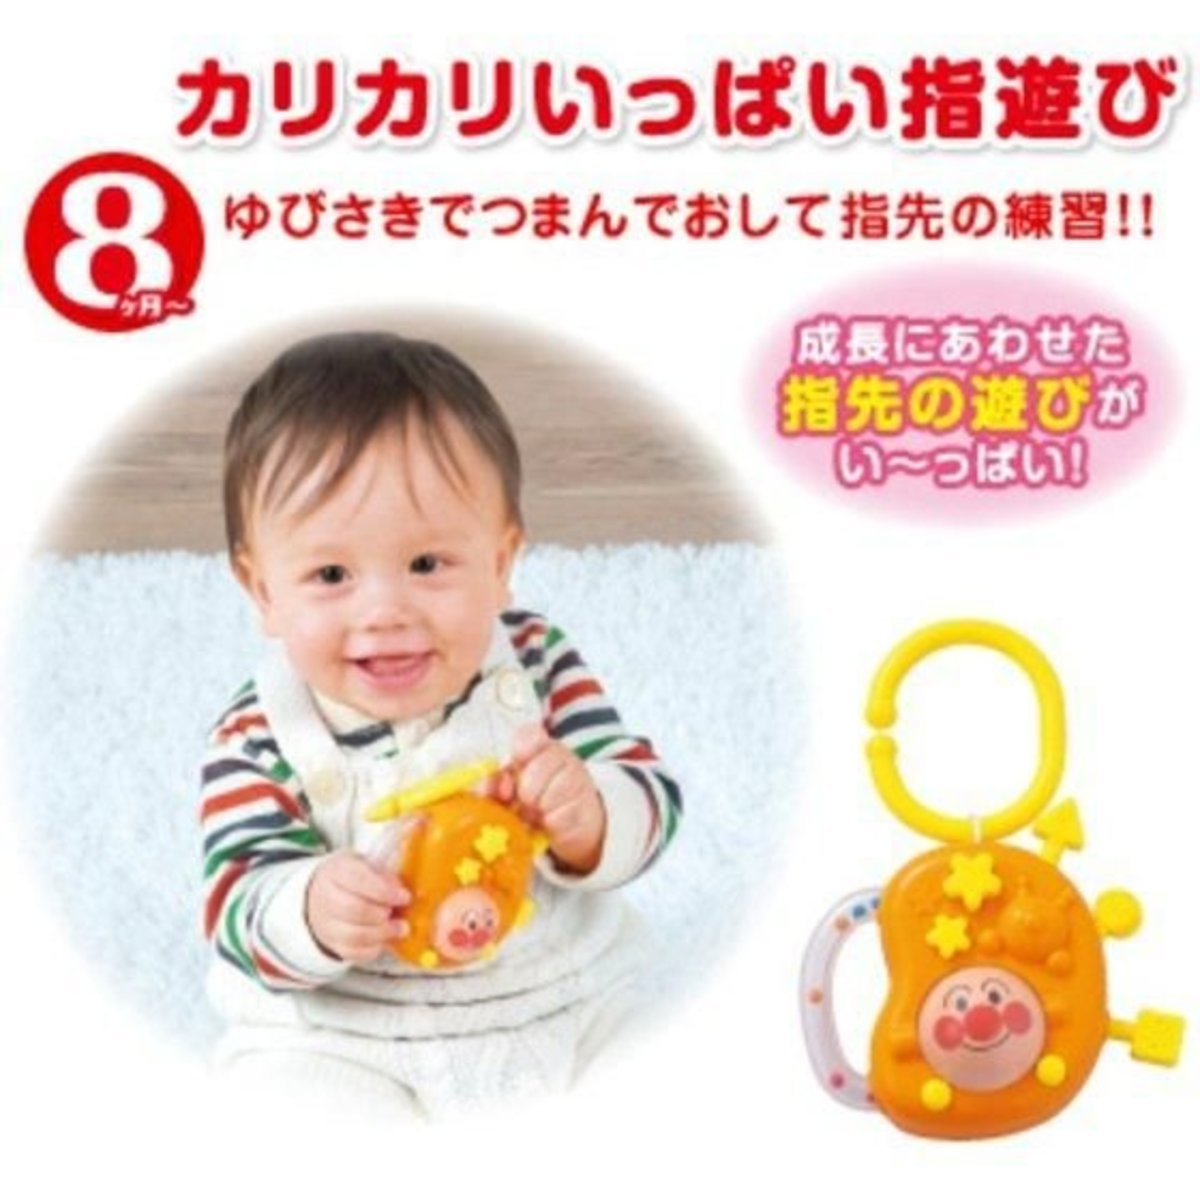 Anpanman Toys for training fingers